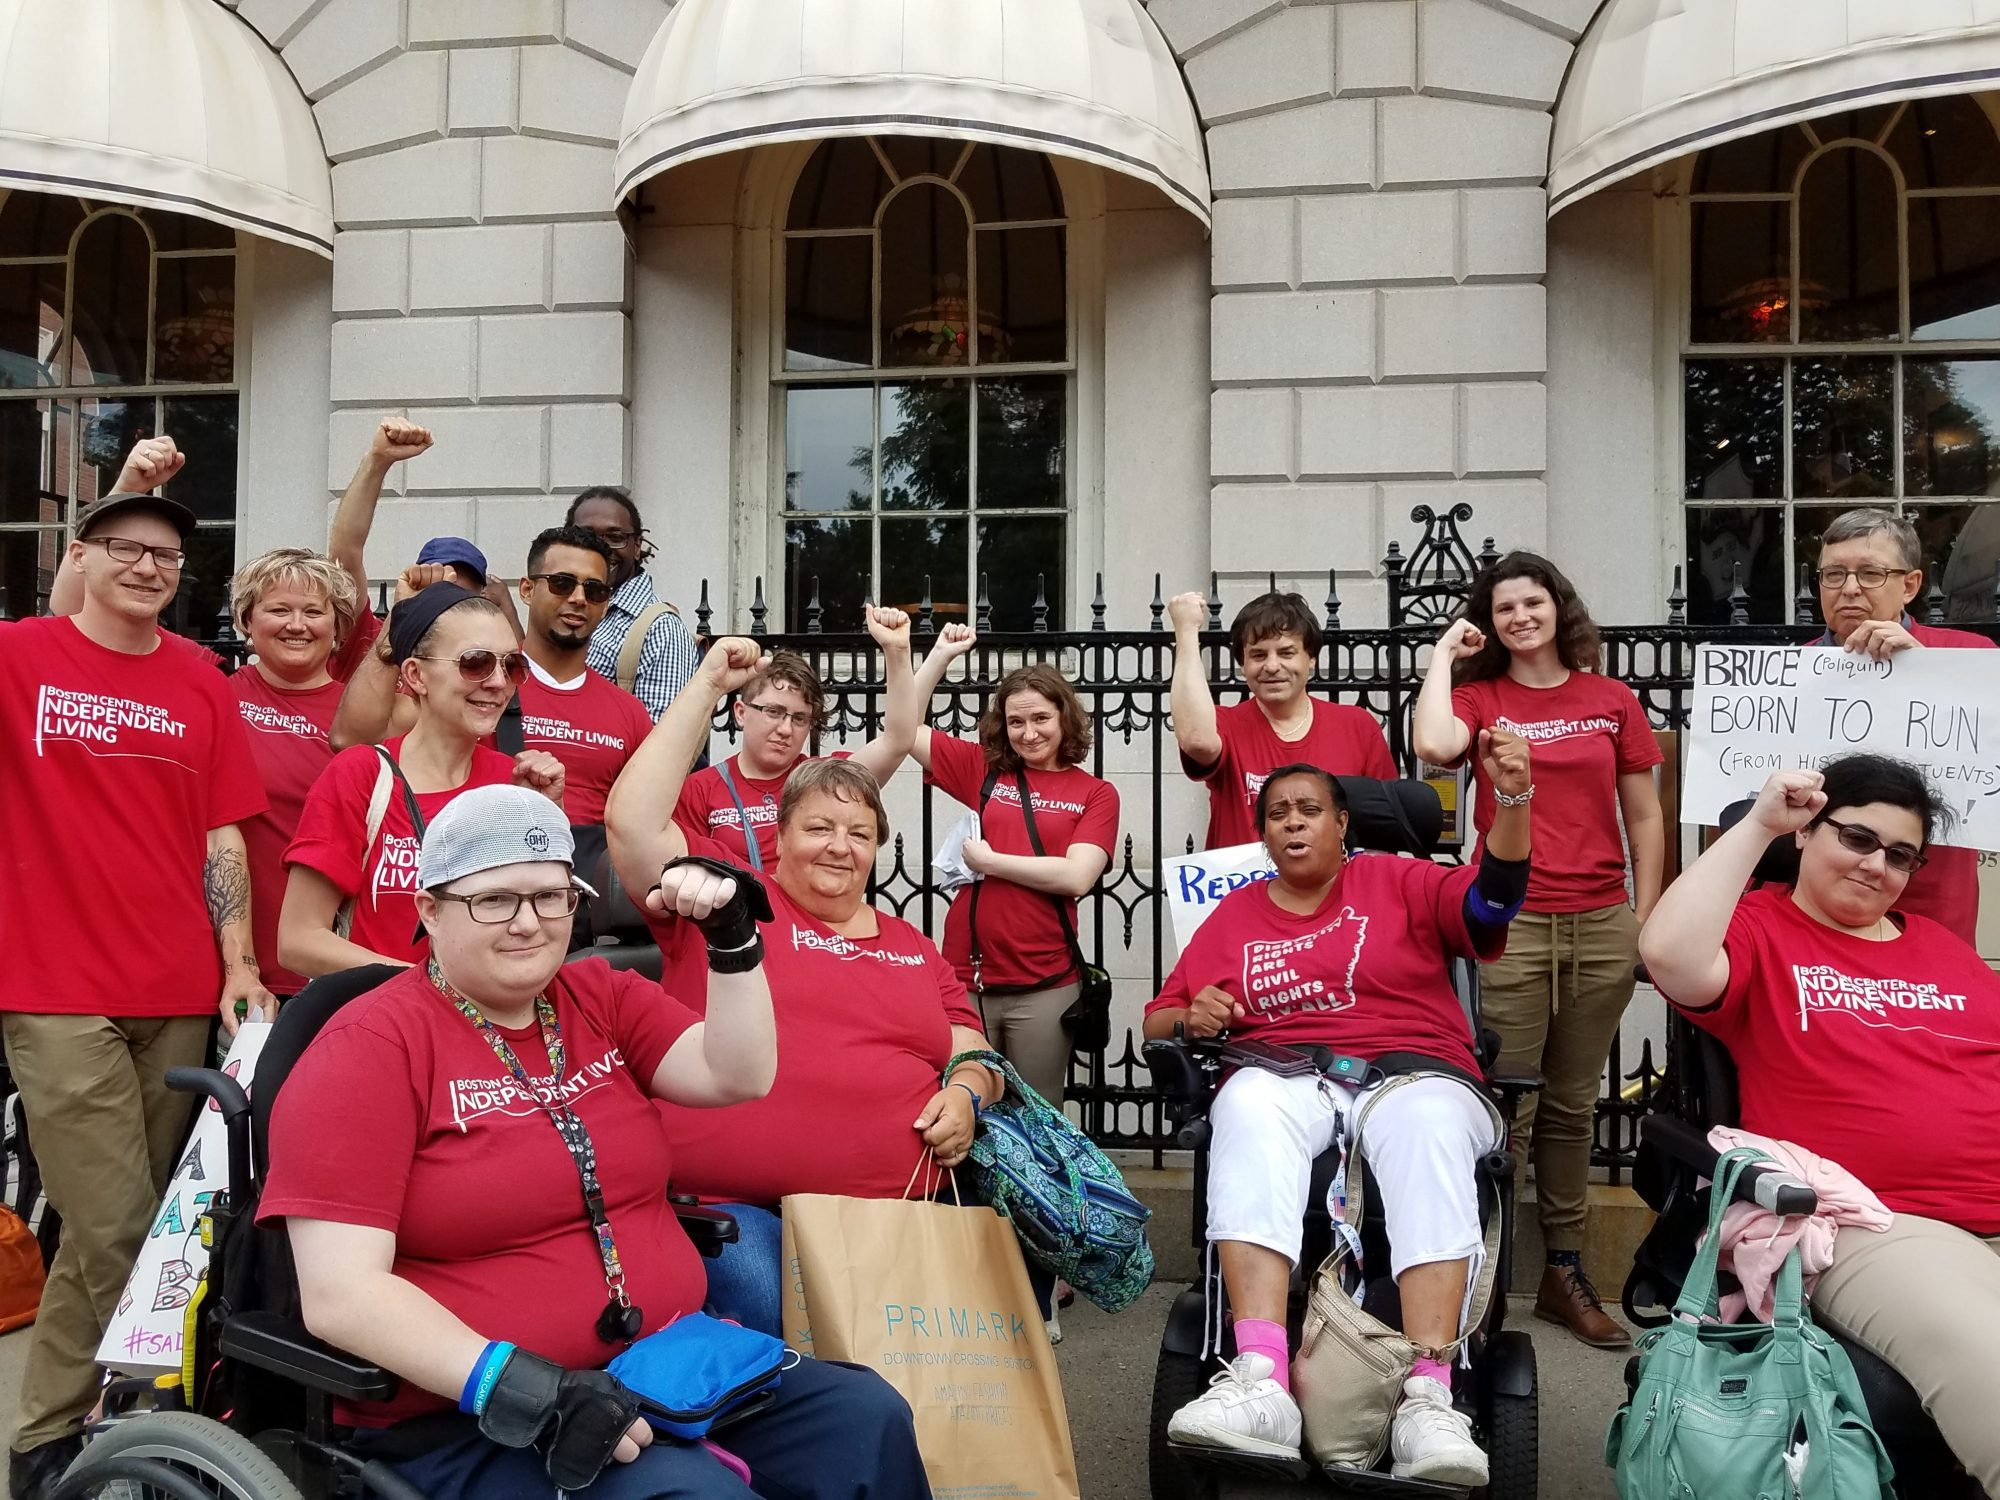 Fifteen people wearing red Boston Center for Independent Living t-shirts smiling and holding their fists in the air.